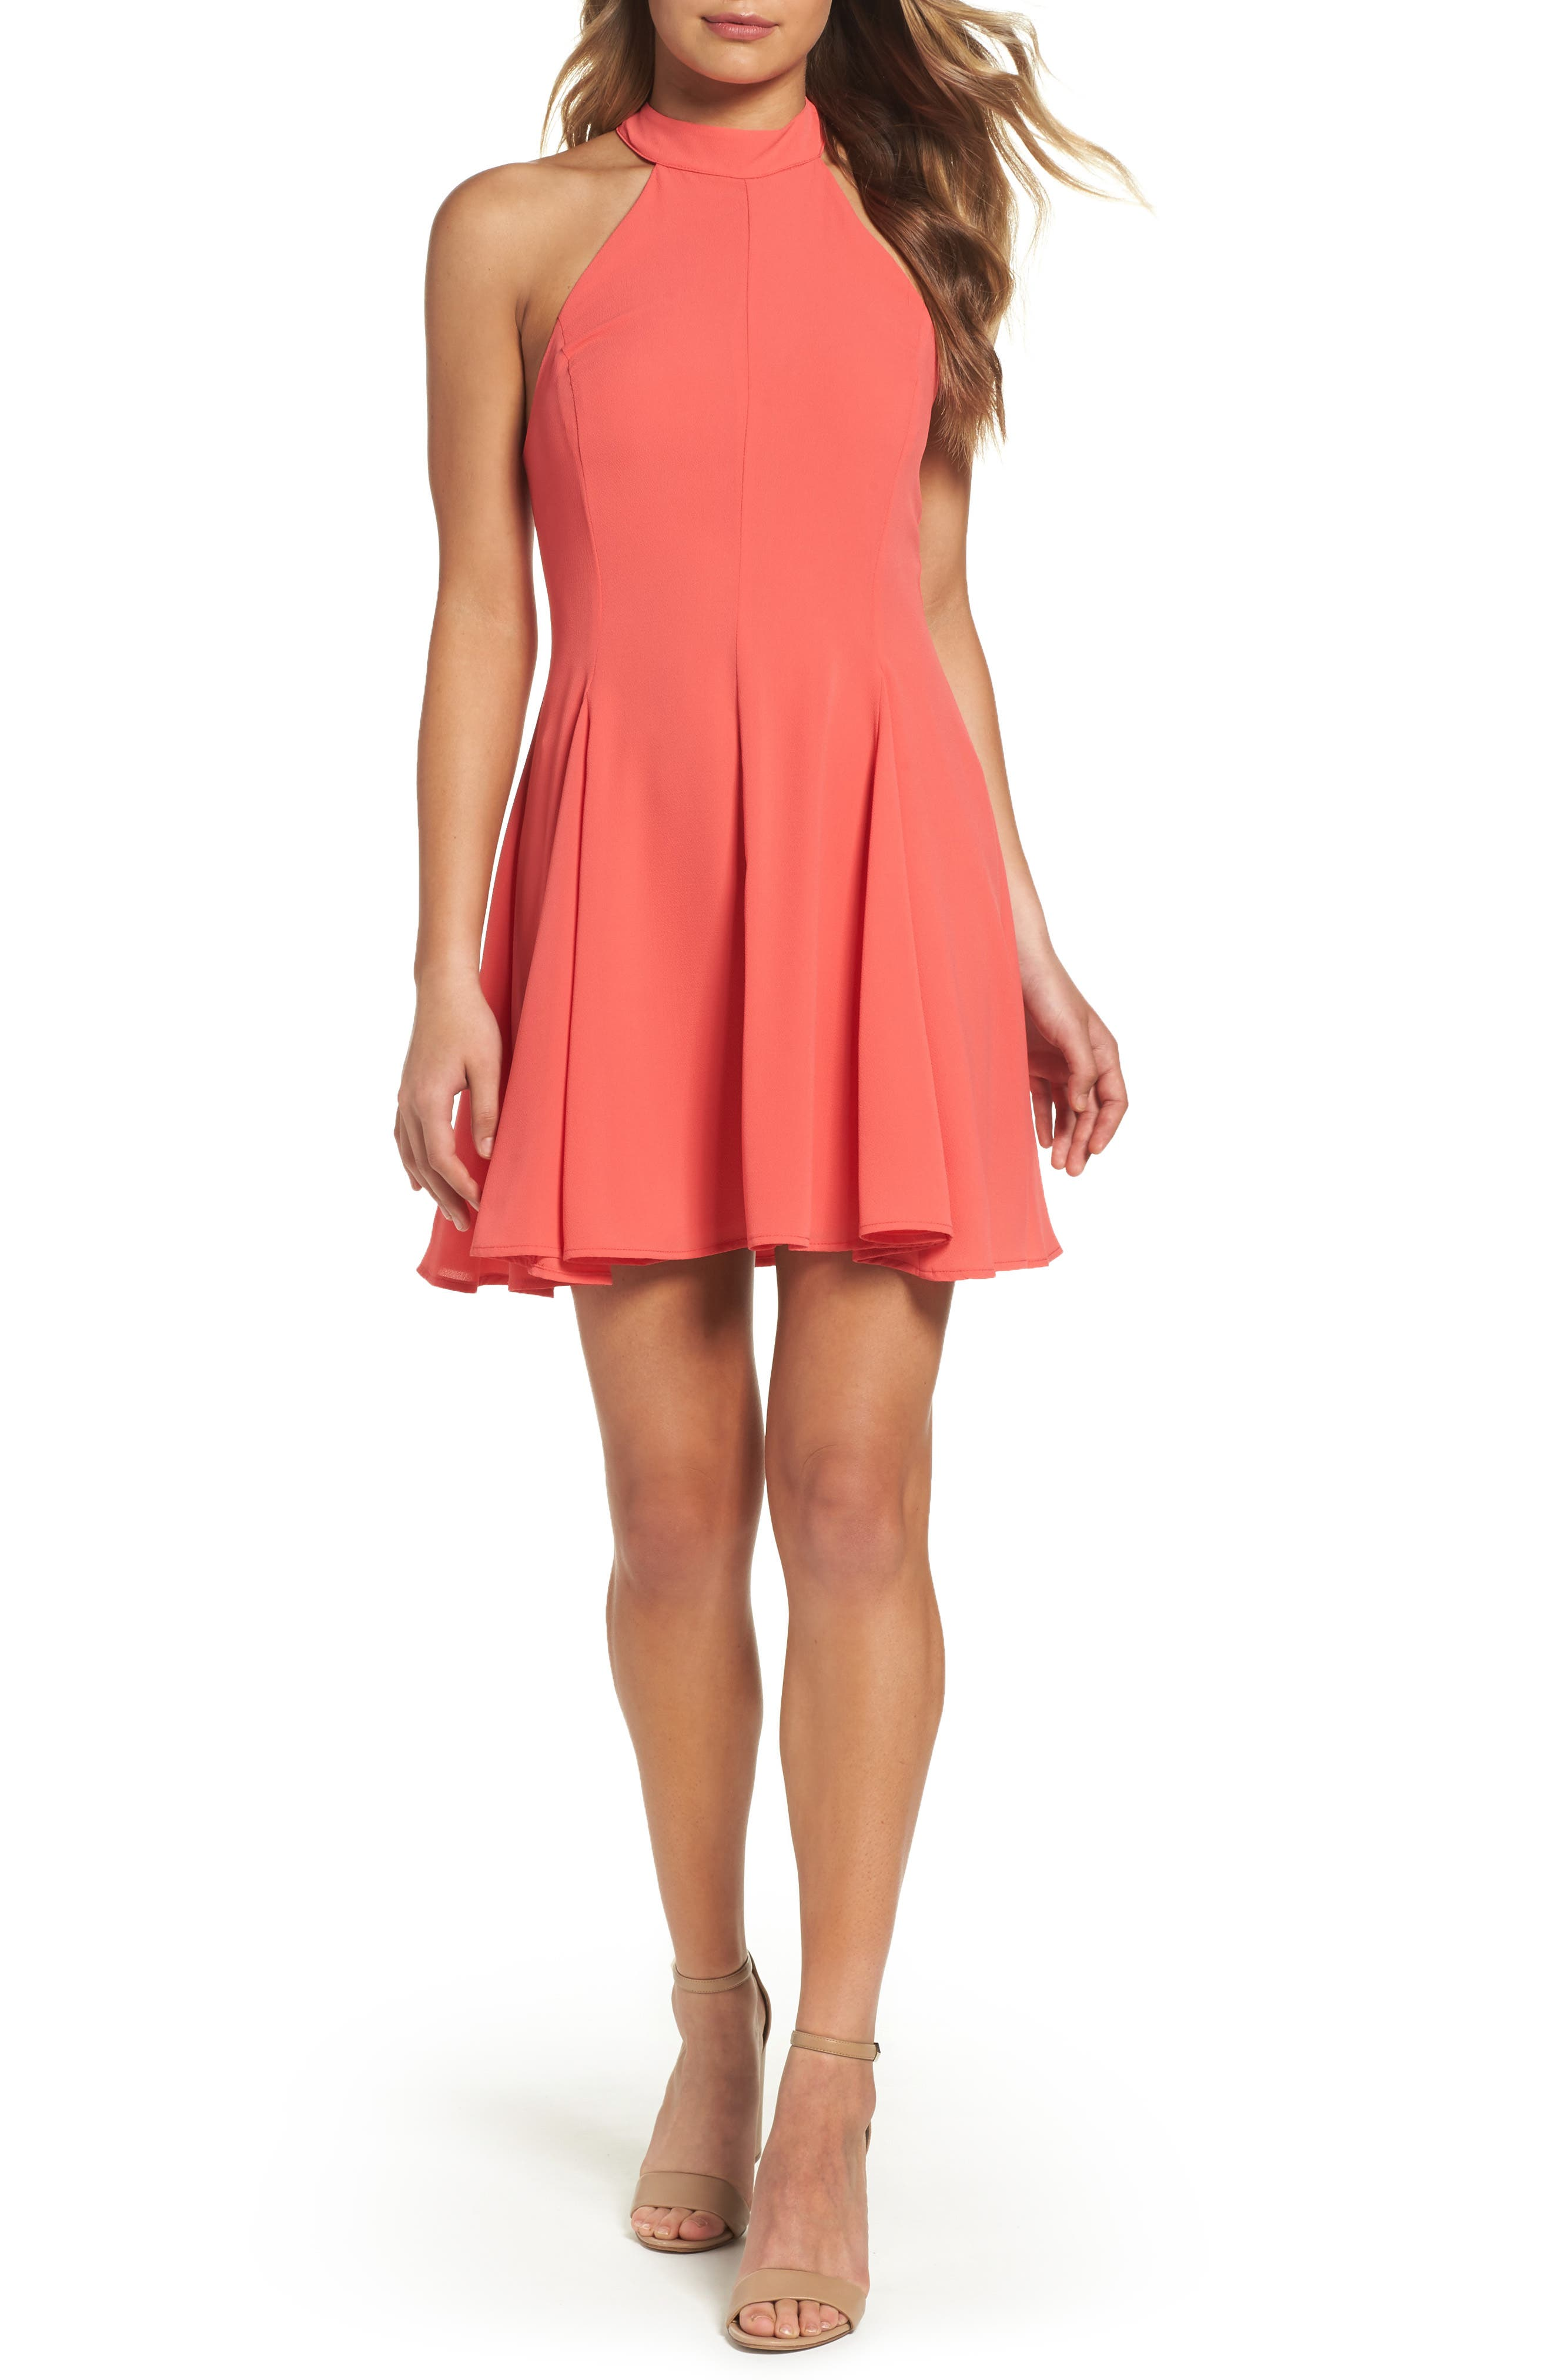 Mary & Maybel Fit & Flare Dress